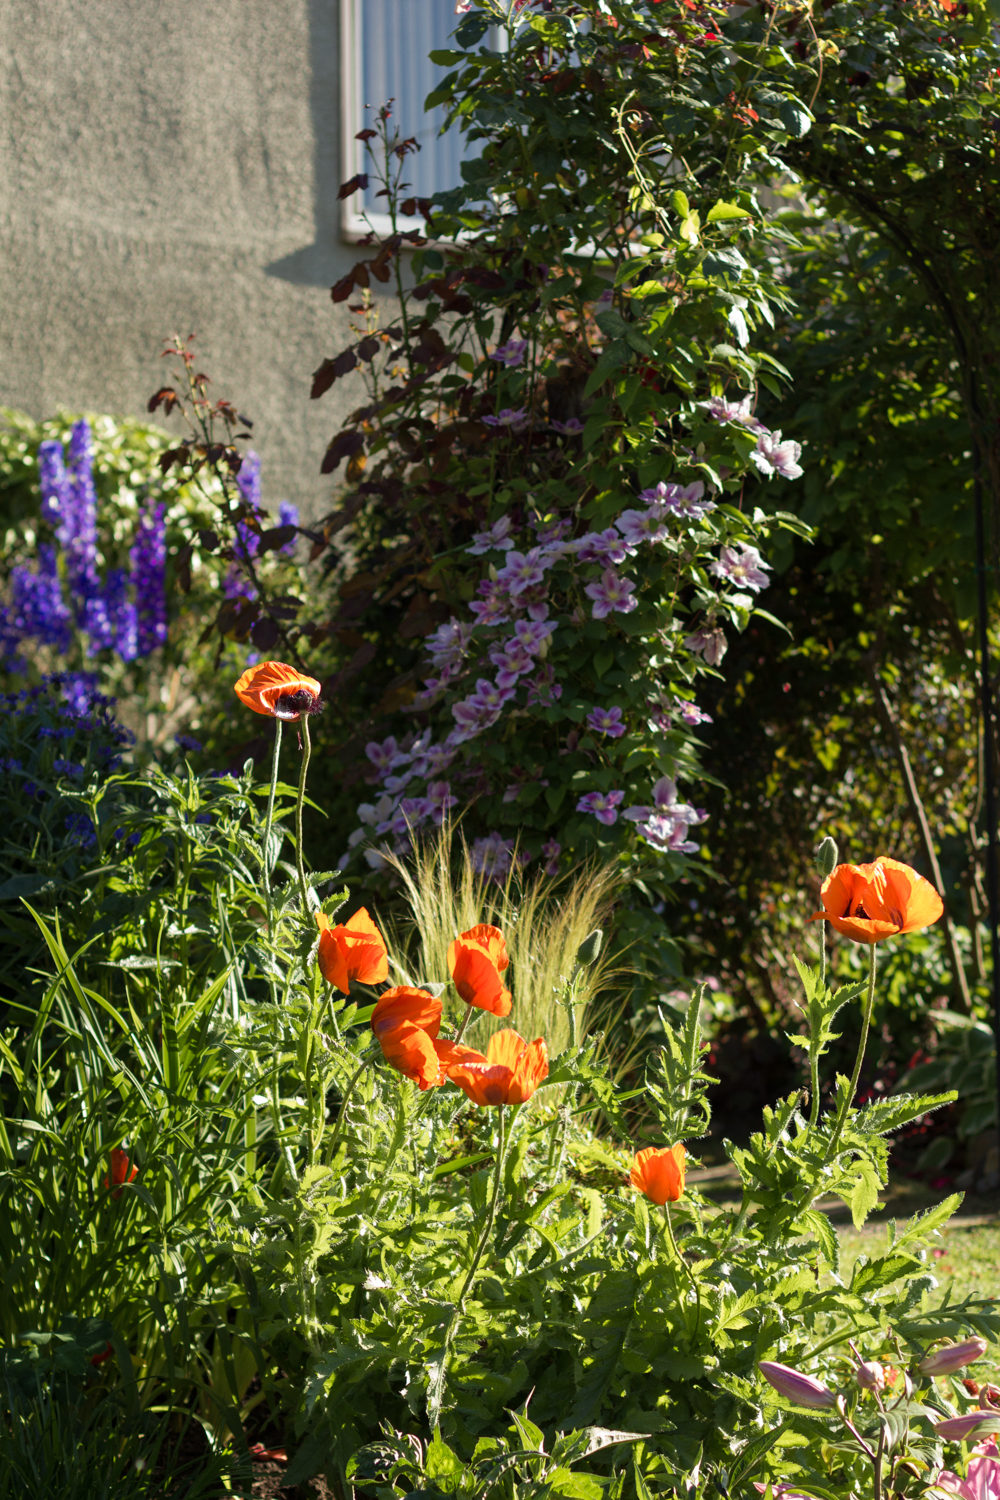 2. This beautifully tended garden at the corner of 10th and Fir is filled with English garden favourites, poppies, delphiniums and clematis.